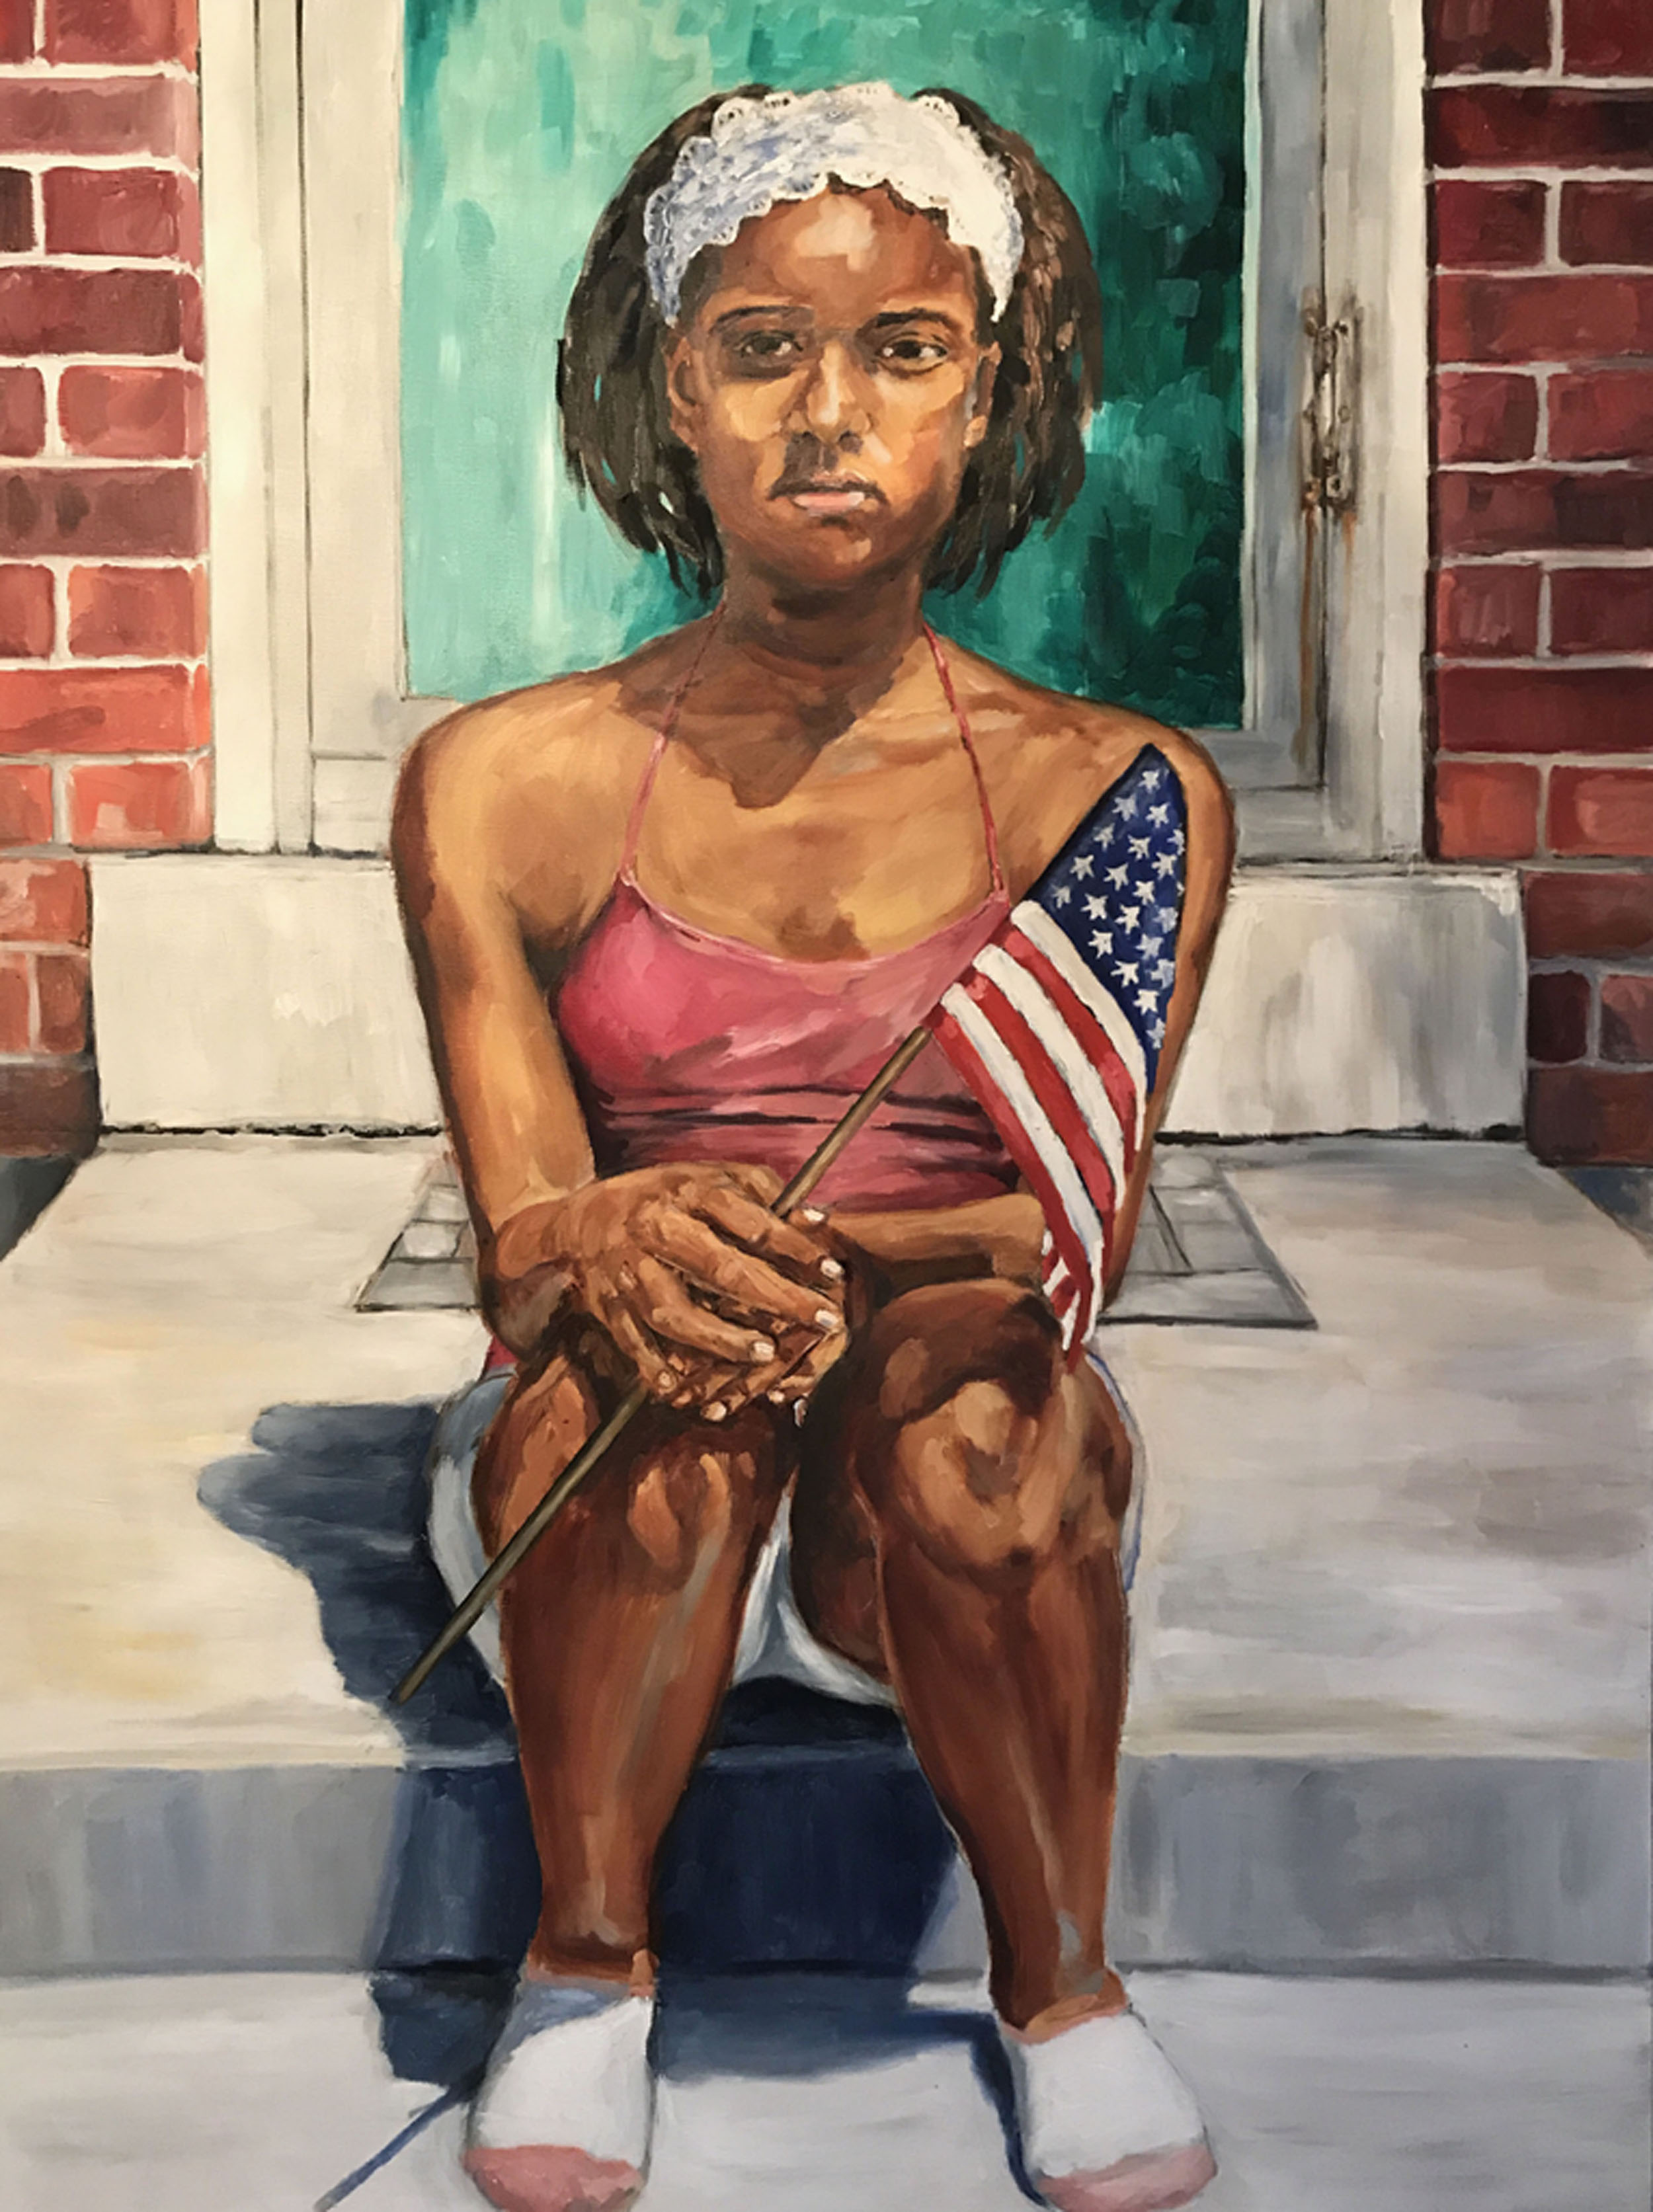 """""""Fourth of July"""" Sandra Charles, Oil on canvas, 36x48in, 2016, $3750"""